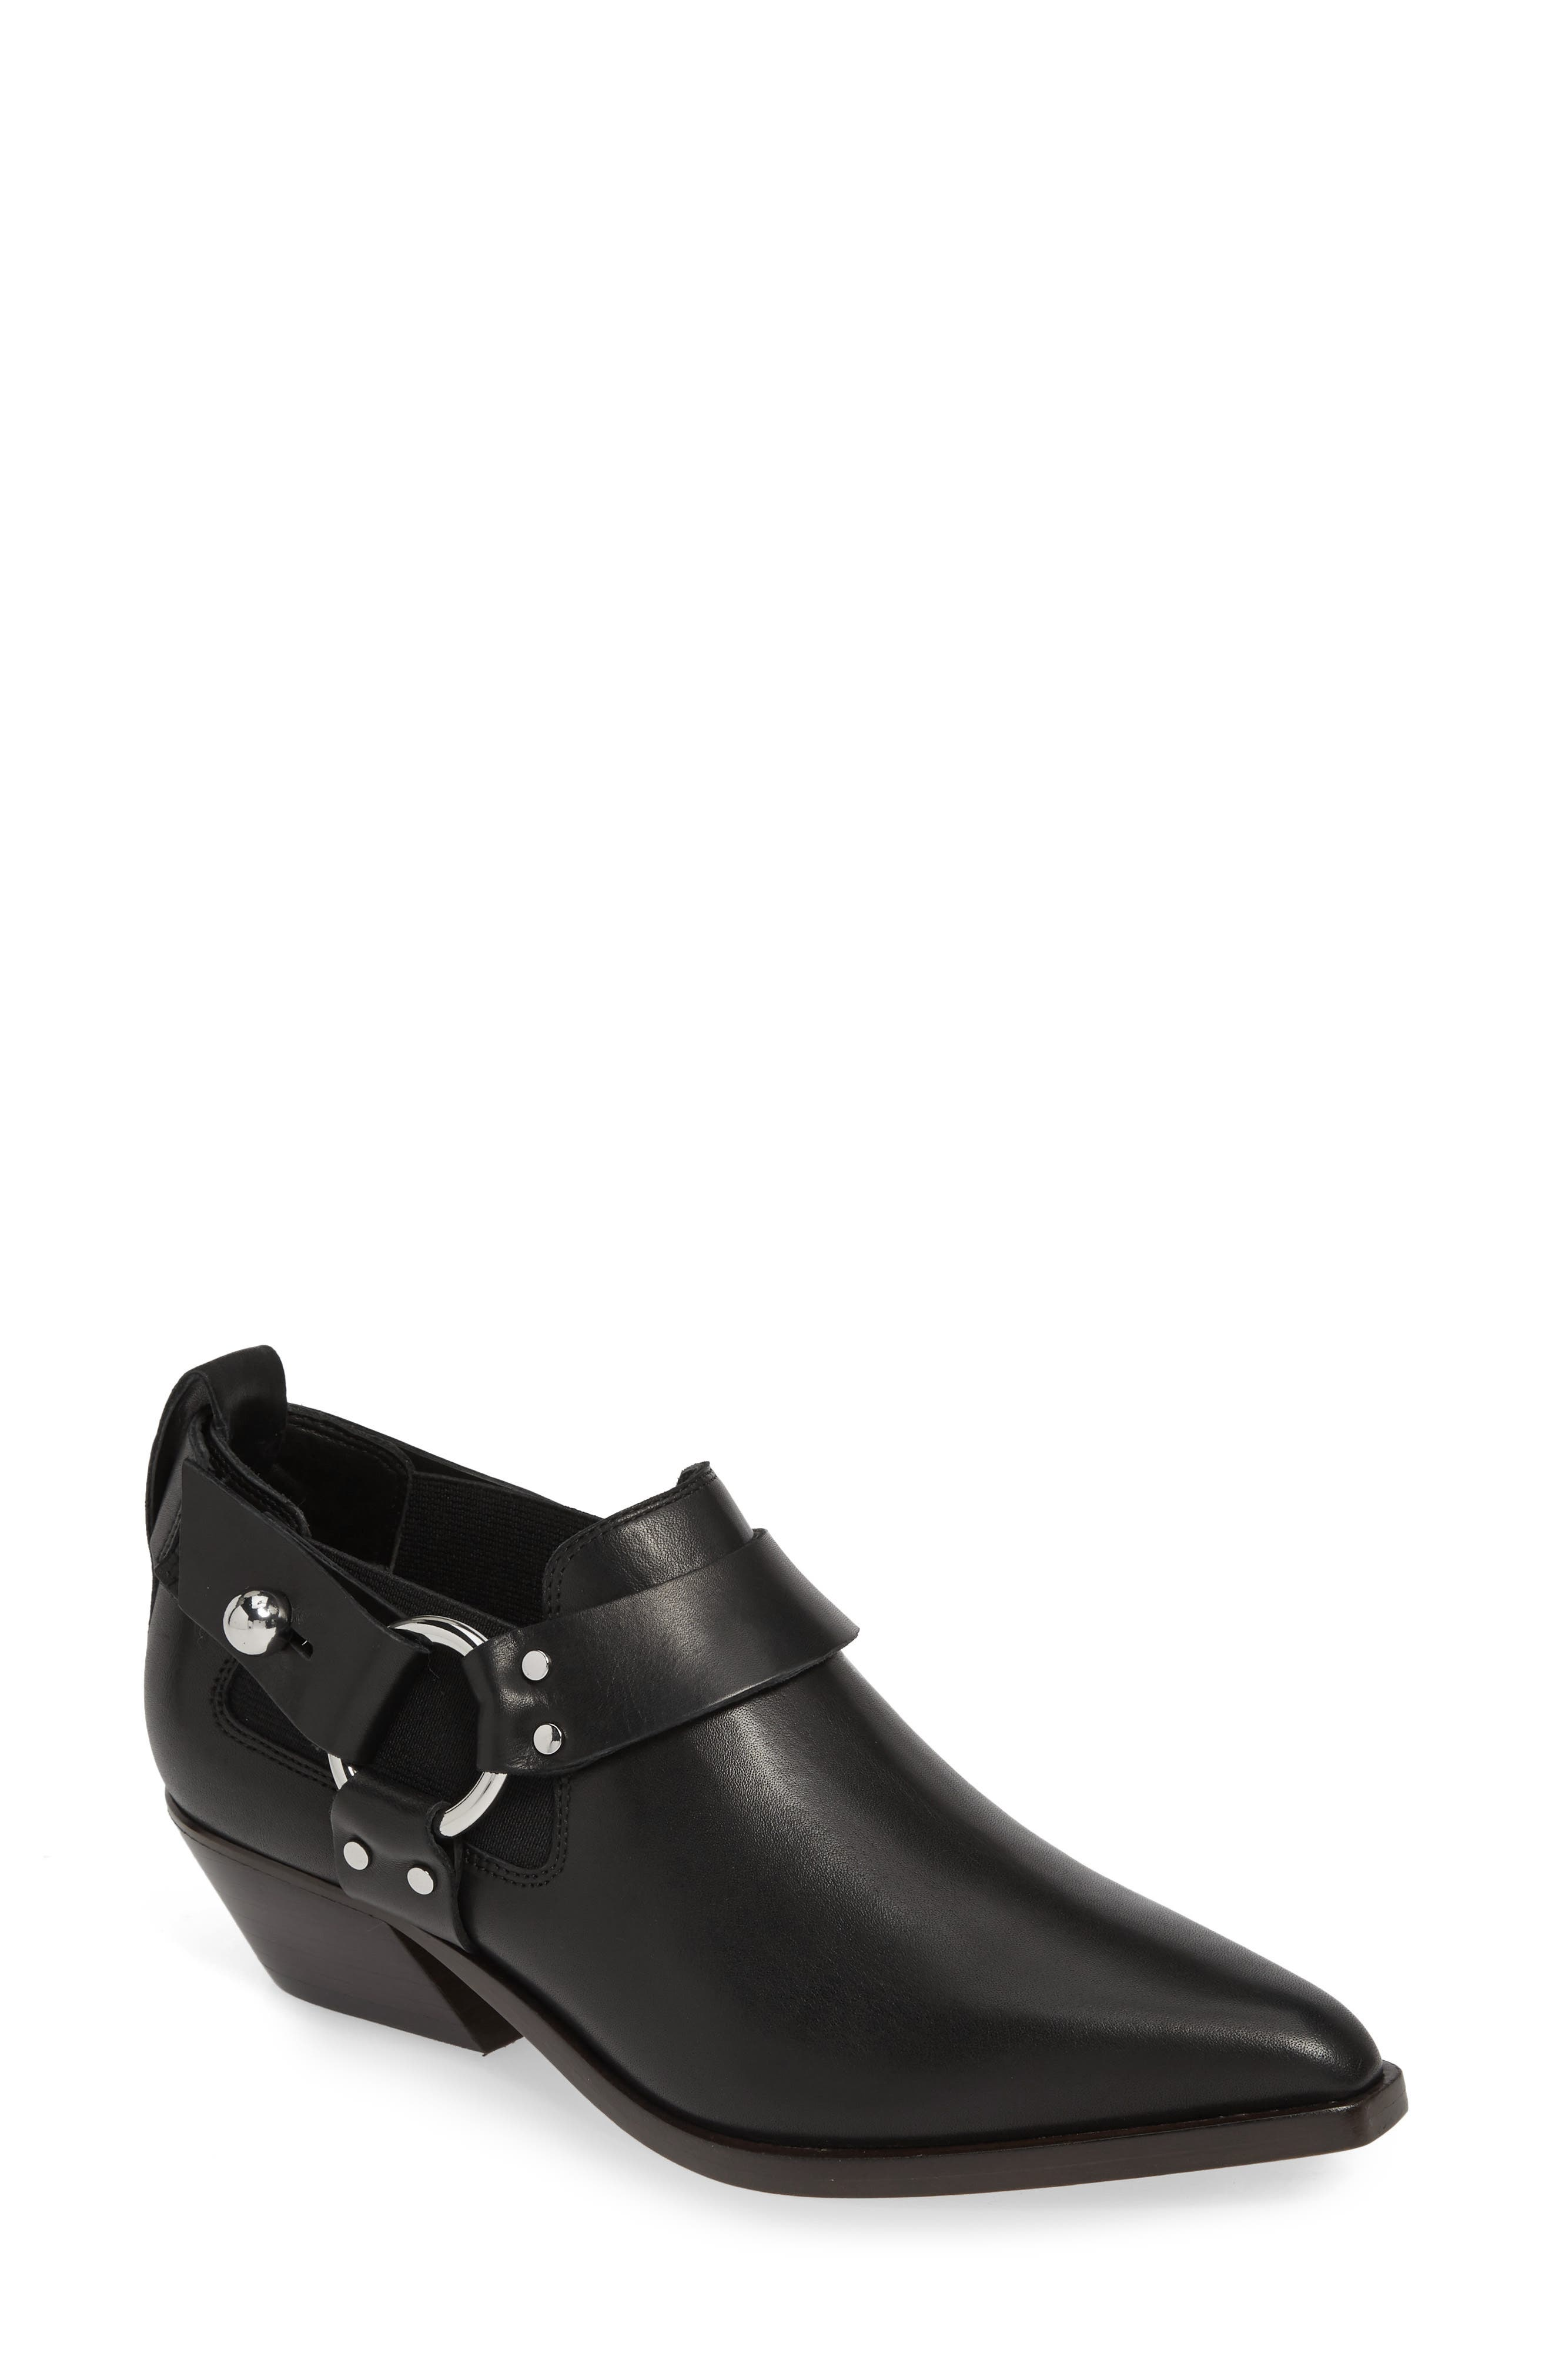 Rag & Bone Harness Bootie - Black